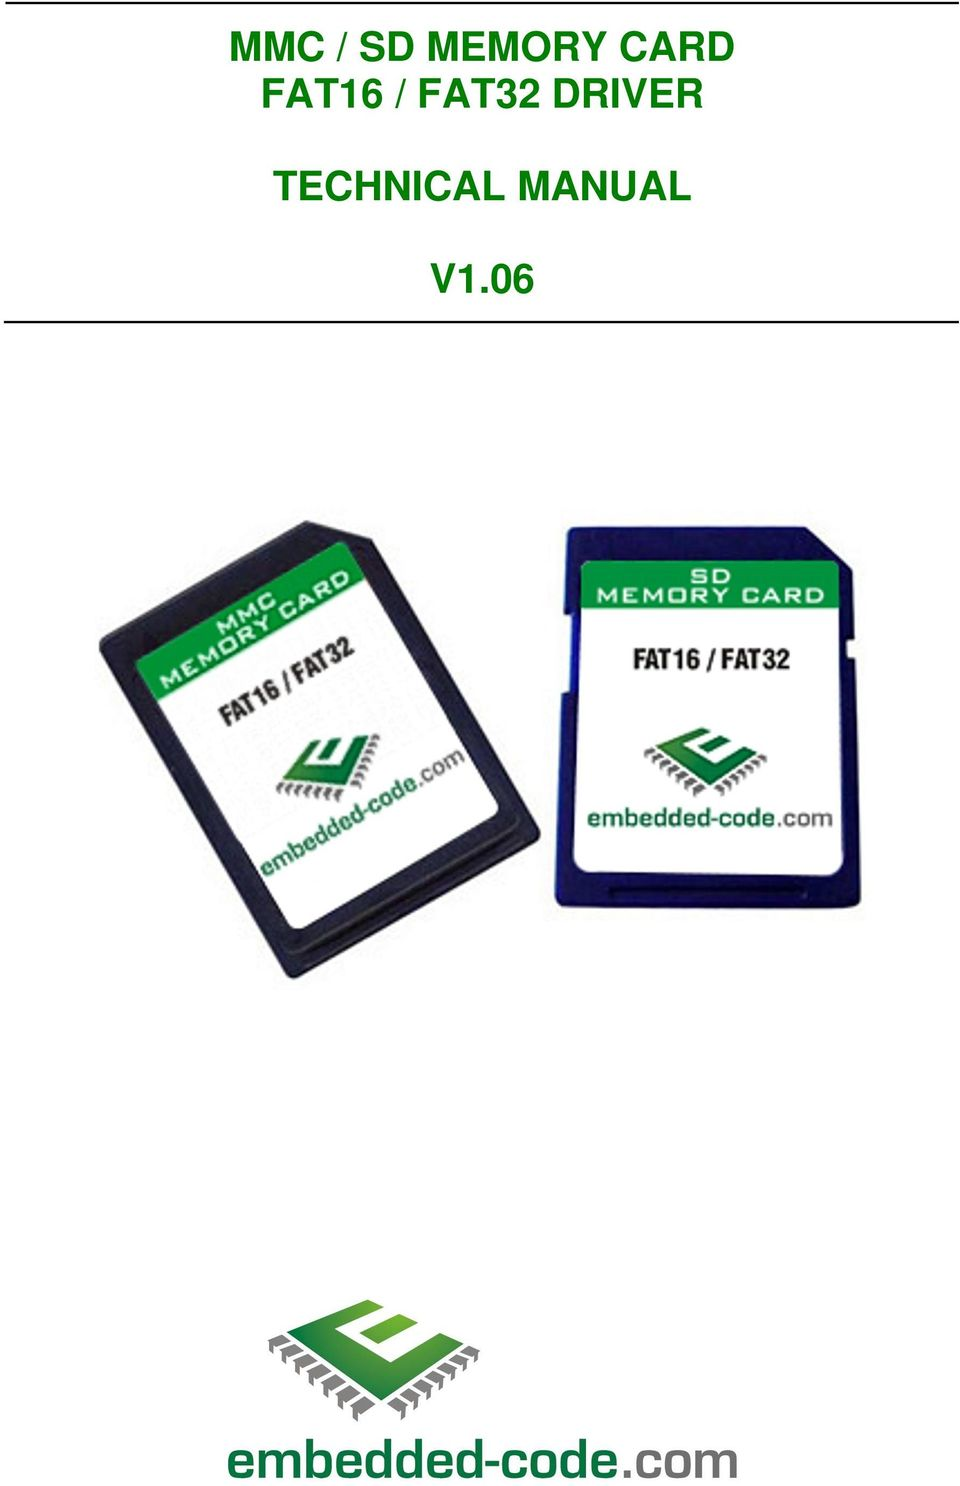 Mmc Sd Memory Card Fat16 Fat32 Driver Technical Manual V Pdf With Arduino Project Circuit Diagram 4 Features Notes 5 Adding The To Your 6 About Our Source Code Files How We Organise